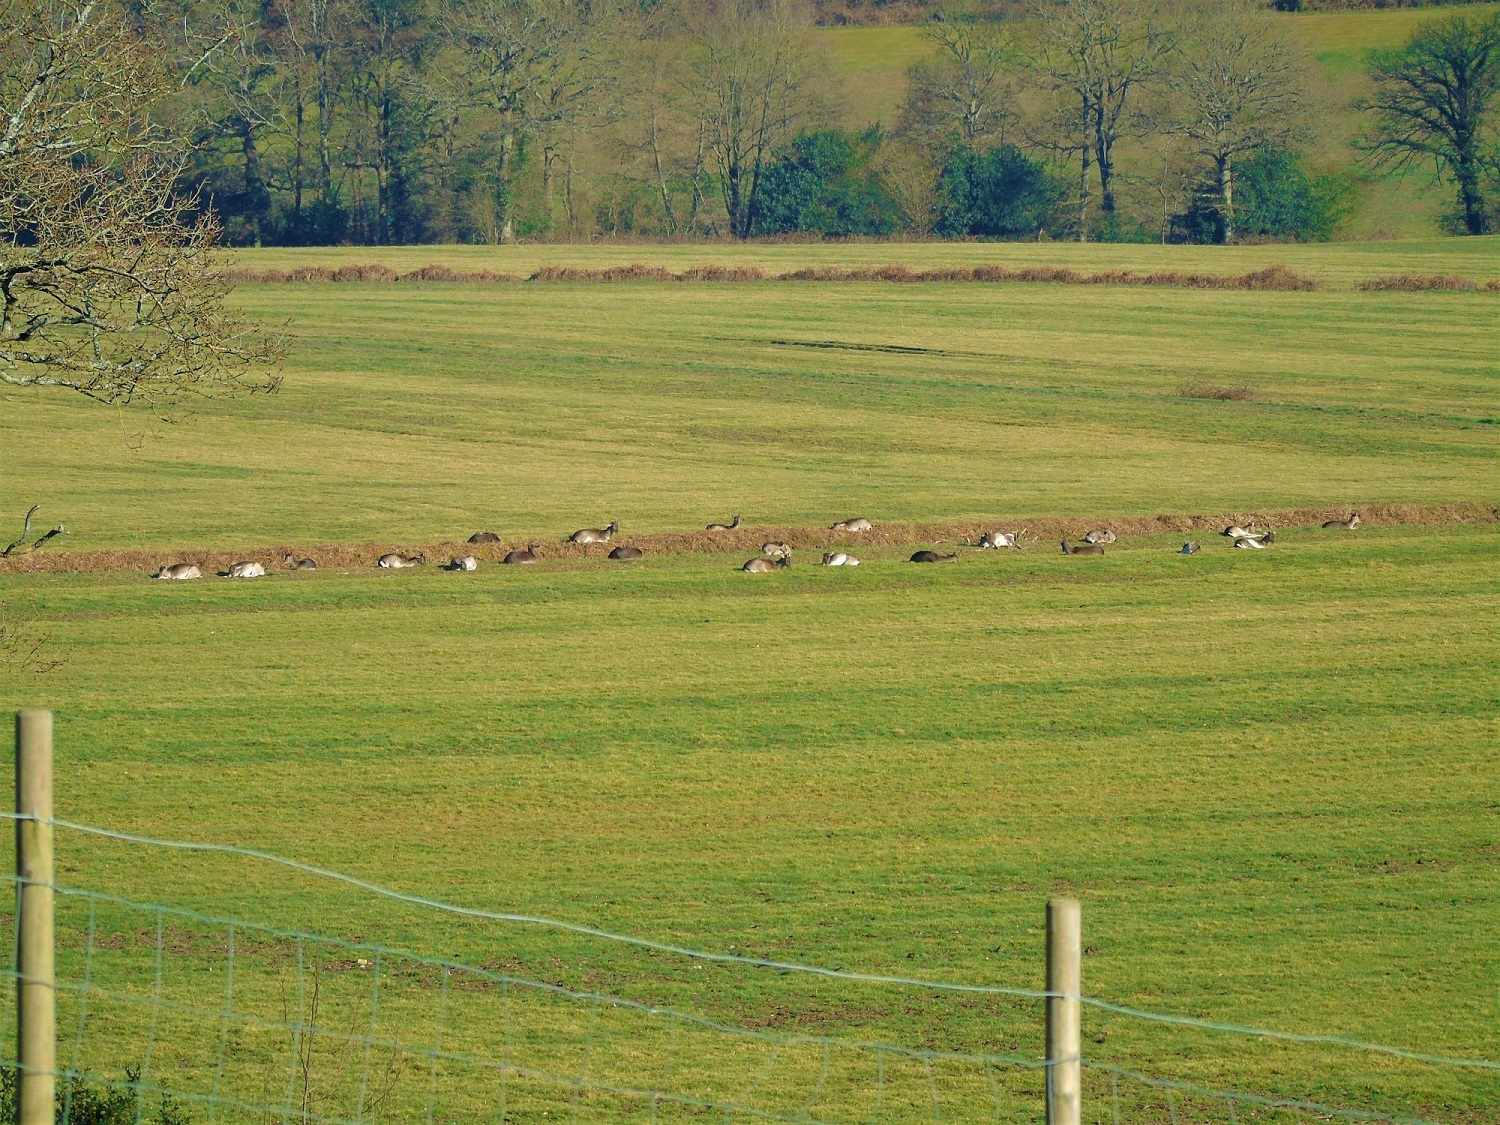 Line up of deer on Spratsbrook farm as seen from Flying Horse Cottage